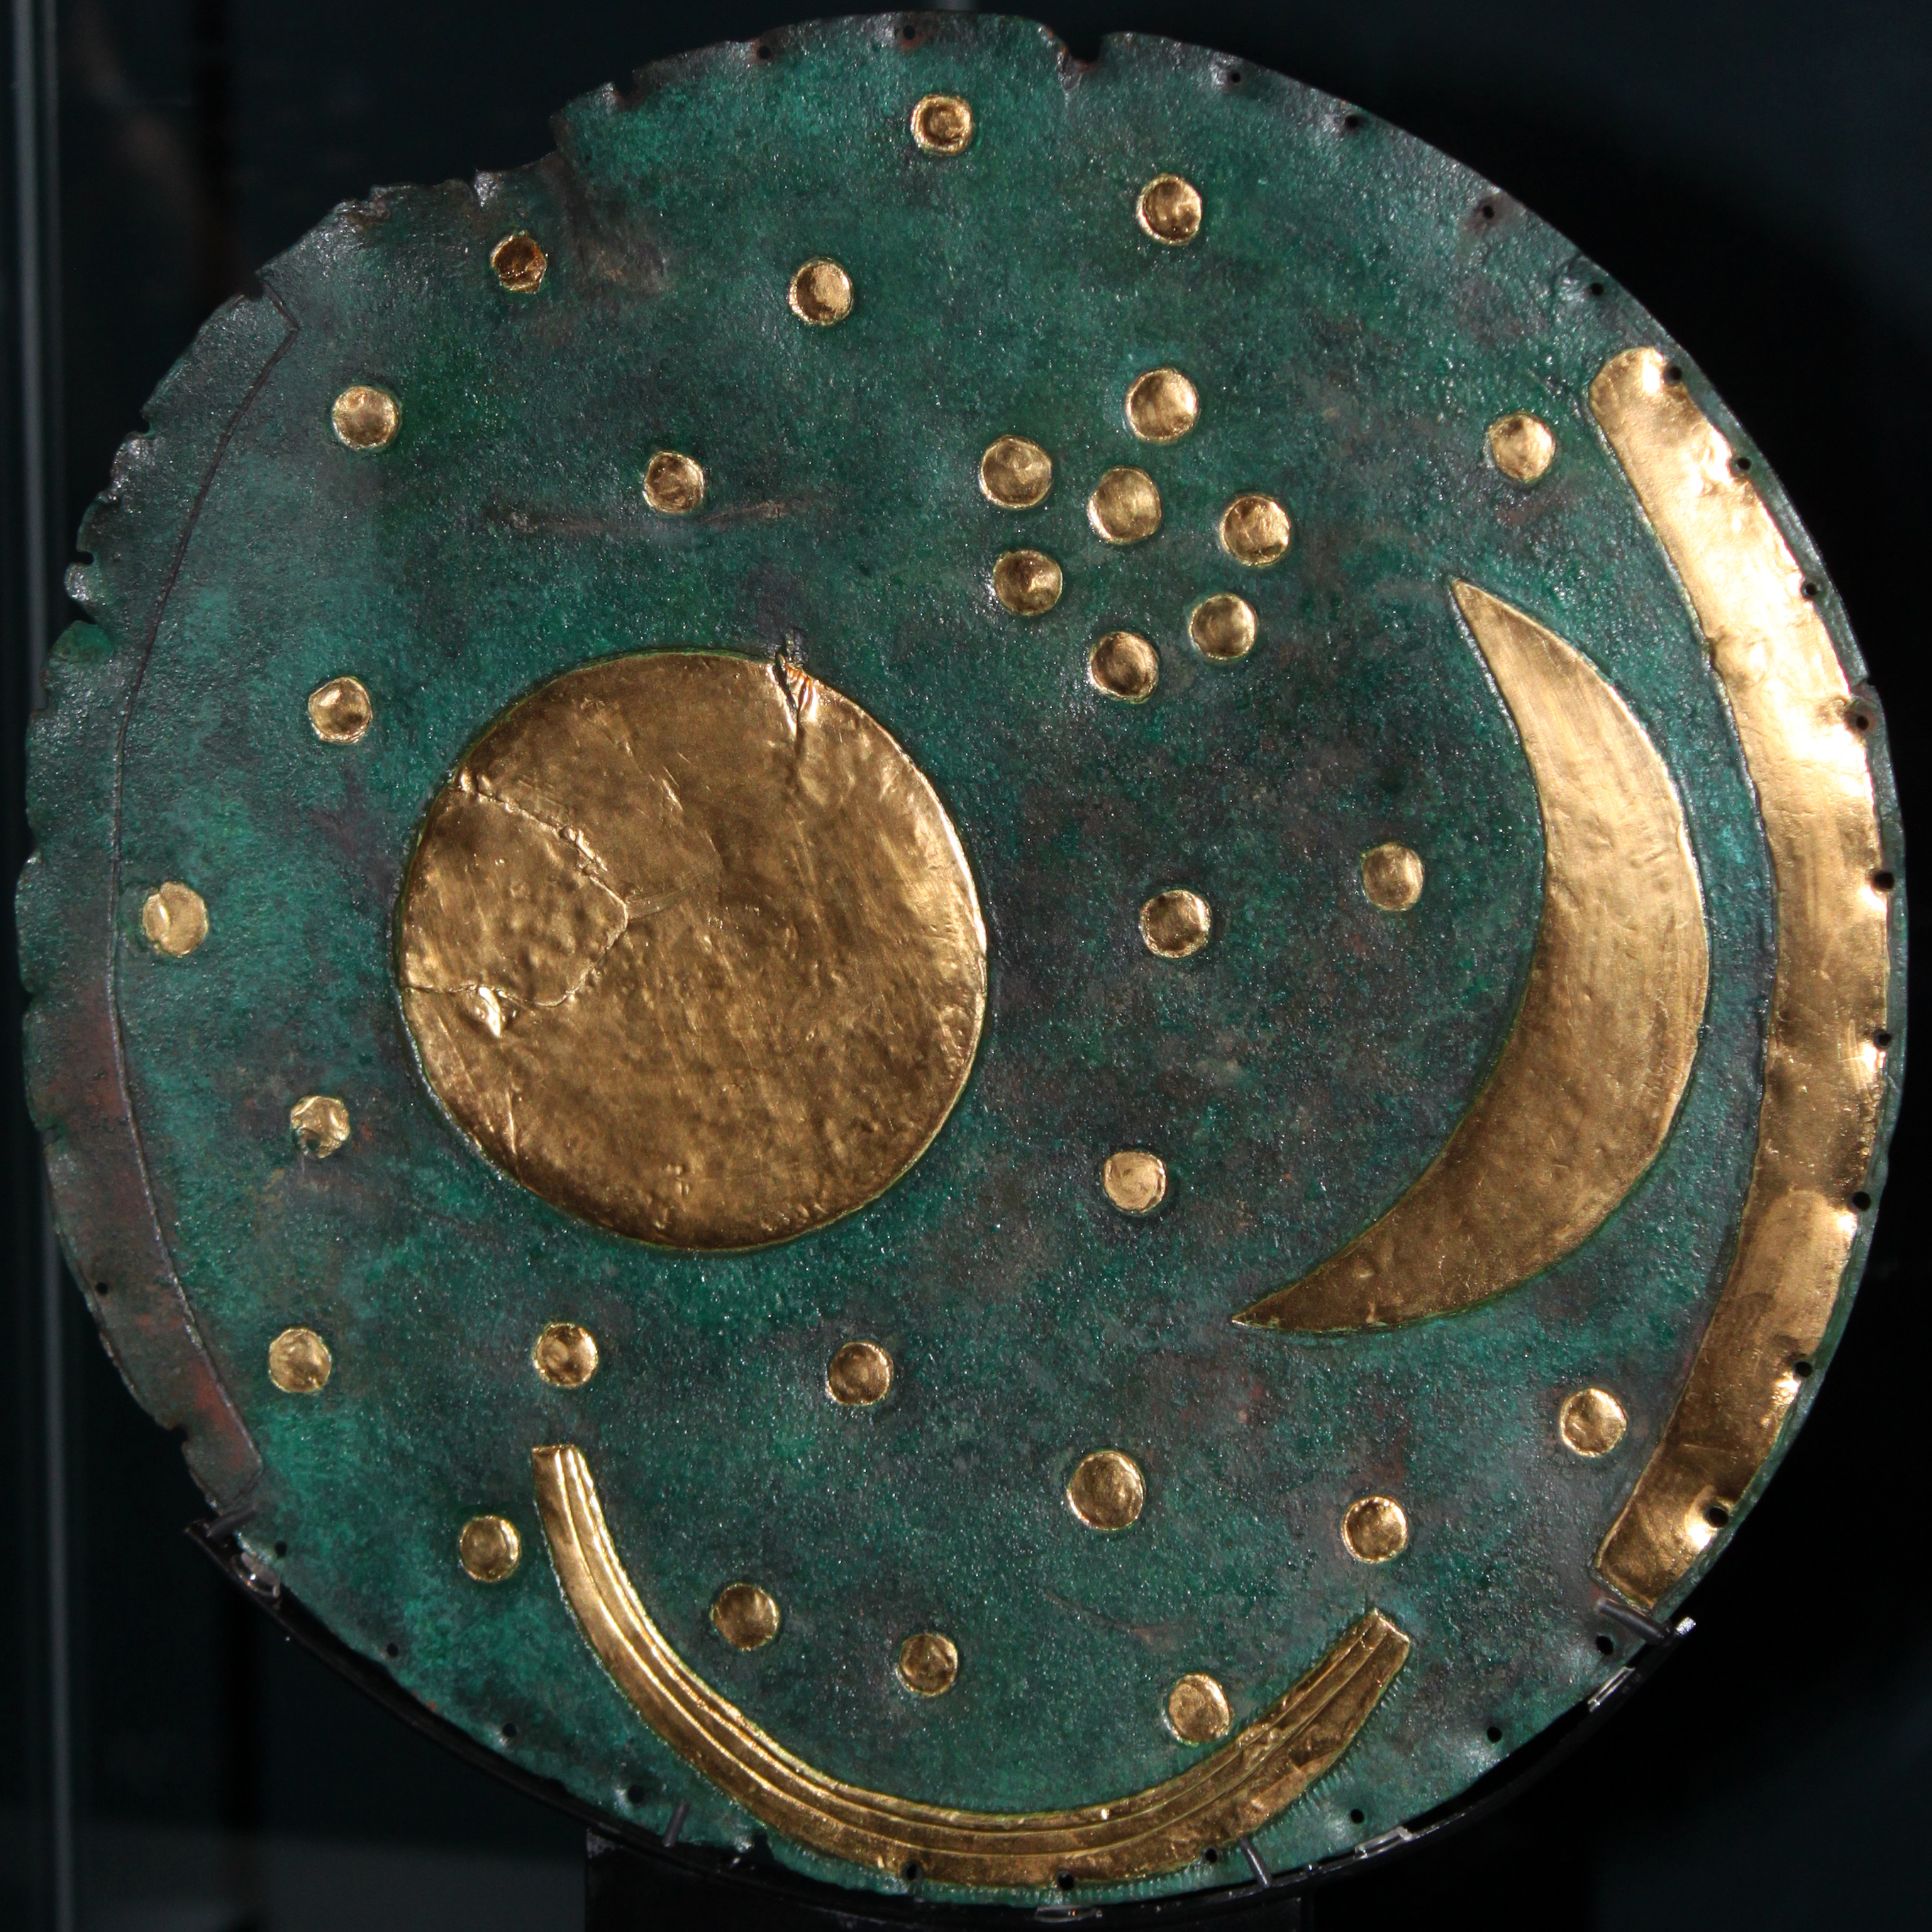 The Nebra Sky disk – CC BY 3.0 by Anagoria, Wikimedia Commons